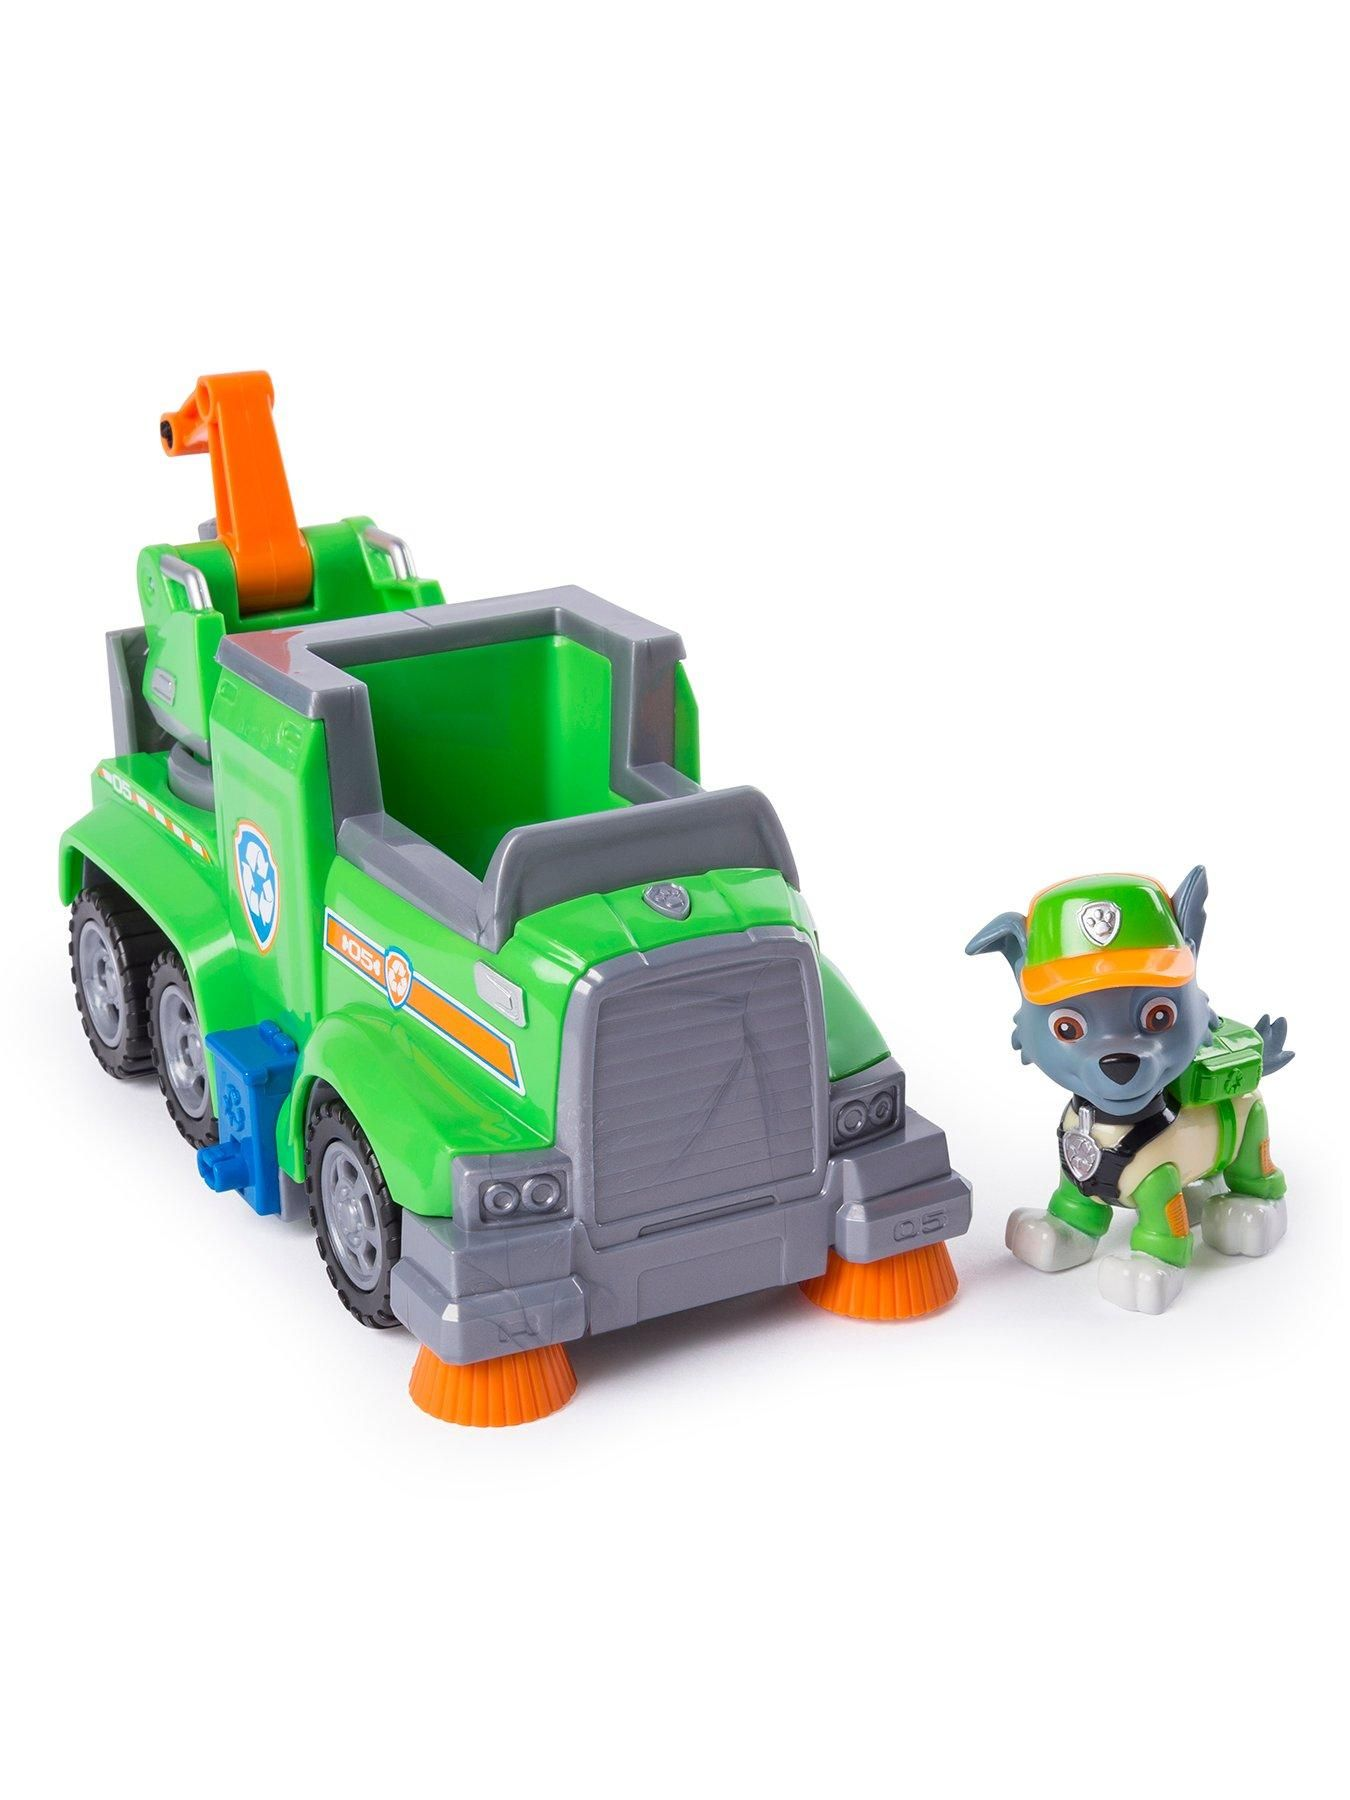 Paw Patrol Paw Patrol Ultimate Rescue Vehicle  Rocky, One Colour  One Colour  - Paw patrol toys, Rescue vehicles, Paw patrol, Paw patrol rocky, Zuma paw patrol, Toy trucks - Paw Patrol Paw Patrol Ultimate Rescue Vehicle  Rocky No job is too big, no pup is too small! Now you can join the Paw Patrol Pups on a Paw Patrol Mission! Just like in the show you can play along with the PAW Patrol pups  Whether there'a rescue mission in your backyard or you have to save Itty Bitty Kitty from a tree, you can race to the ruffruff rescue with the PAW Patrol! Age Range 3  12 years Warning Message Warning Not suitable for children under 3 years Bring home all the excitement